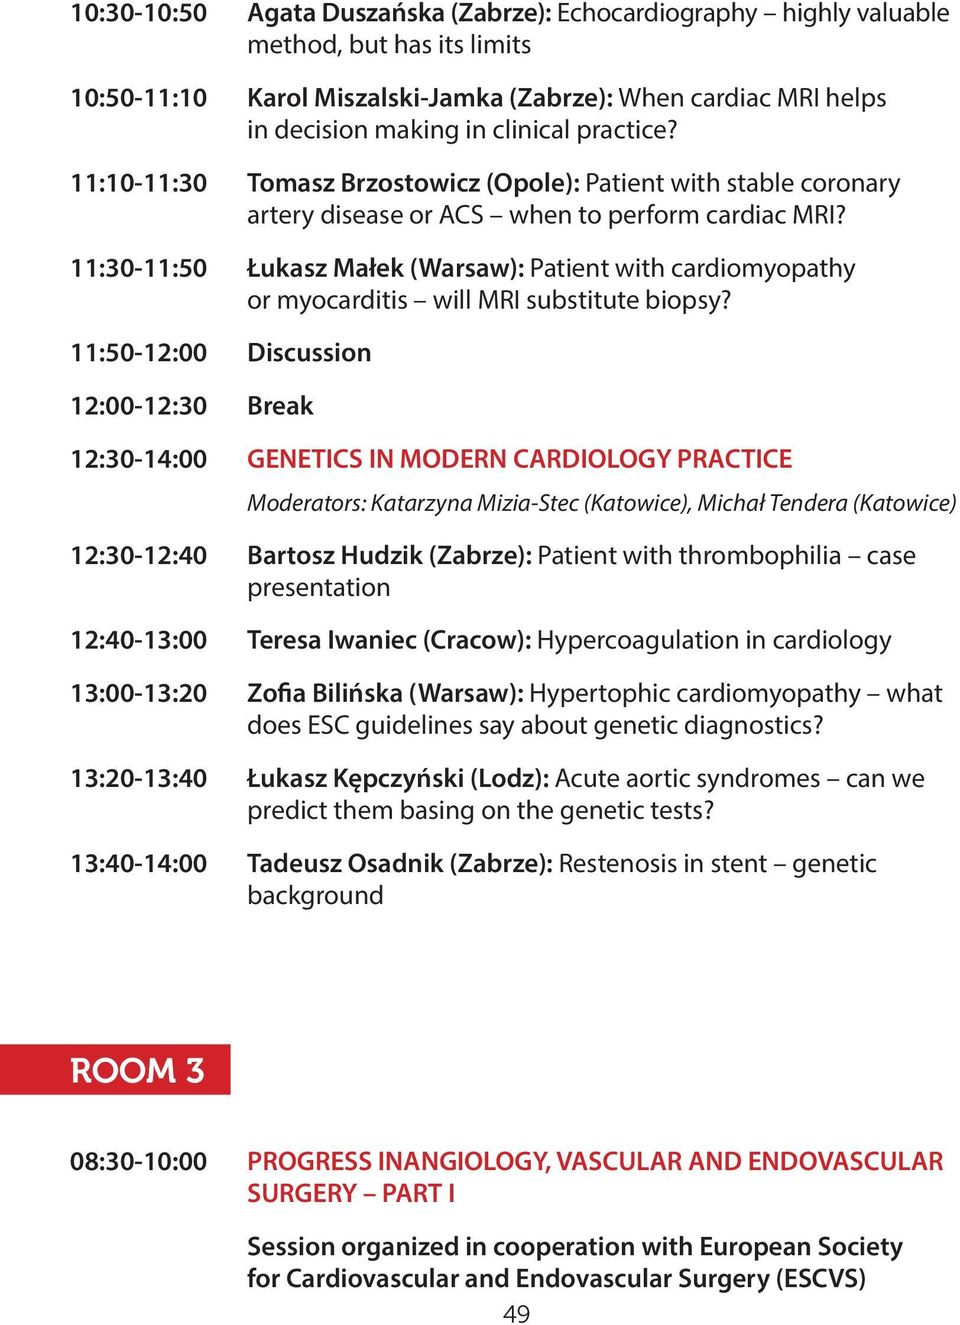 11:30-11:50 Łukasz Małek (Warsaw): Patient with cardiomyopathy or myocarditis will MRI substitute biopsy?